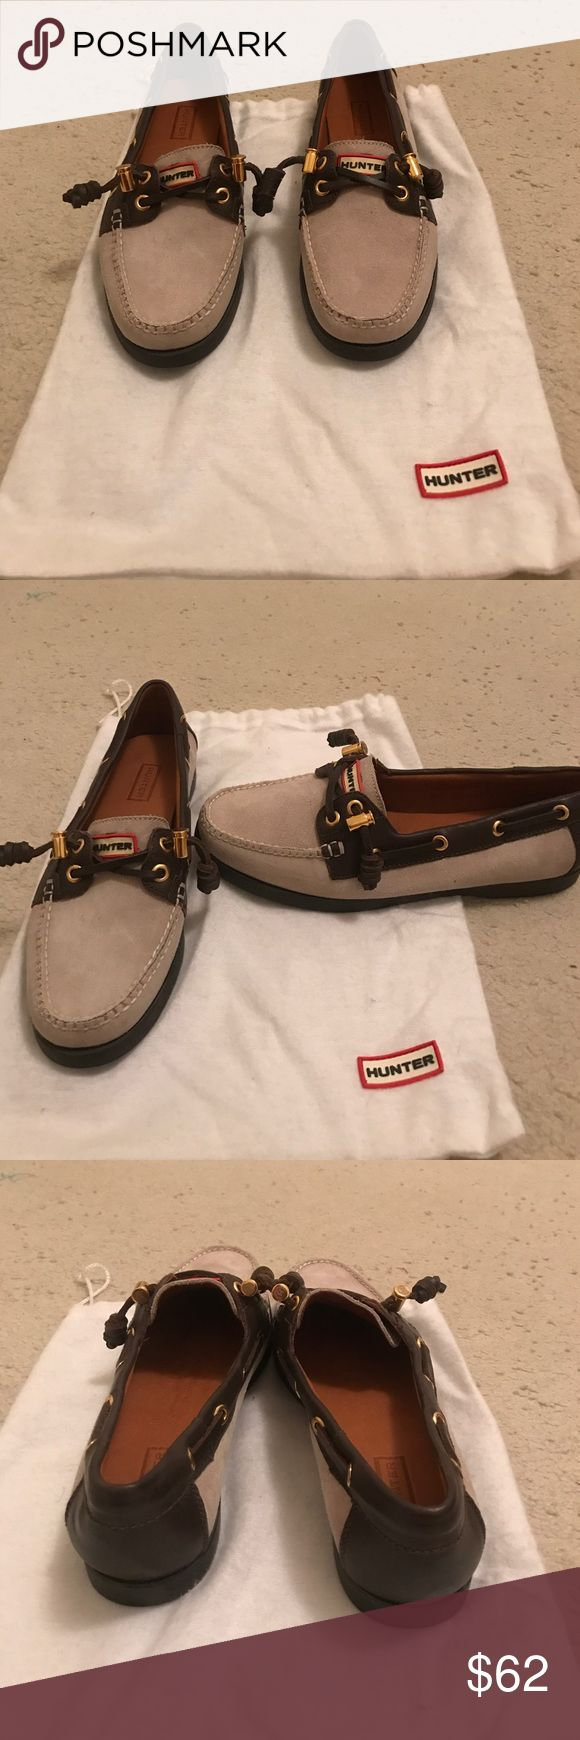 NEW HUNTER Boat Shoes RARE 7.5 Incredible pair of new never worn Hunter boat shoes, size 7.5, in original dust bag Hunter Shoes